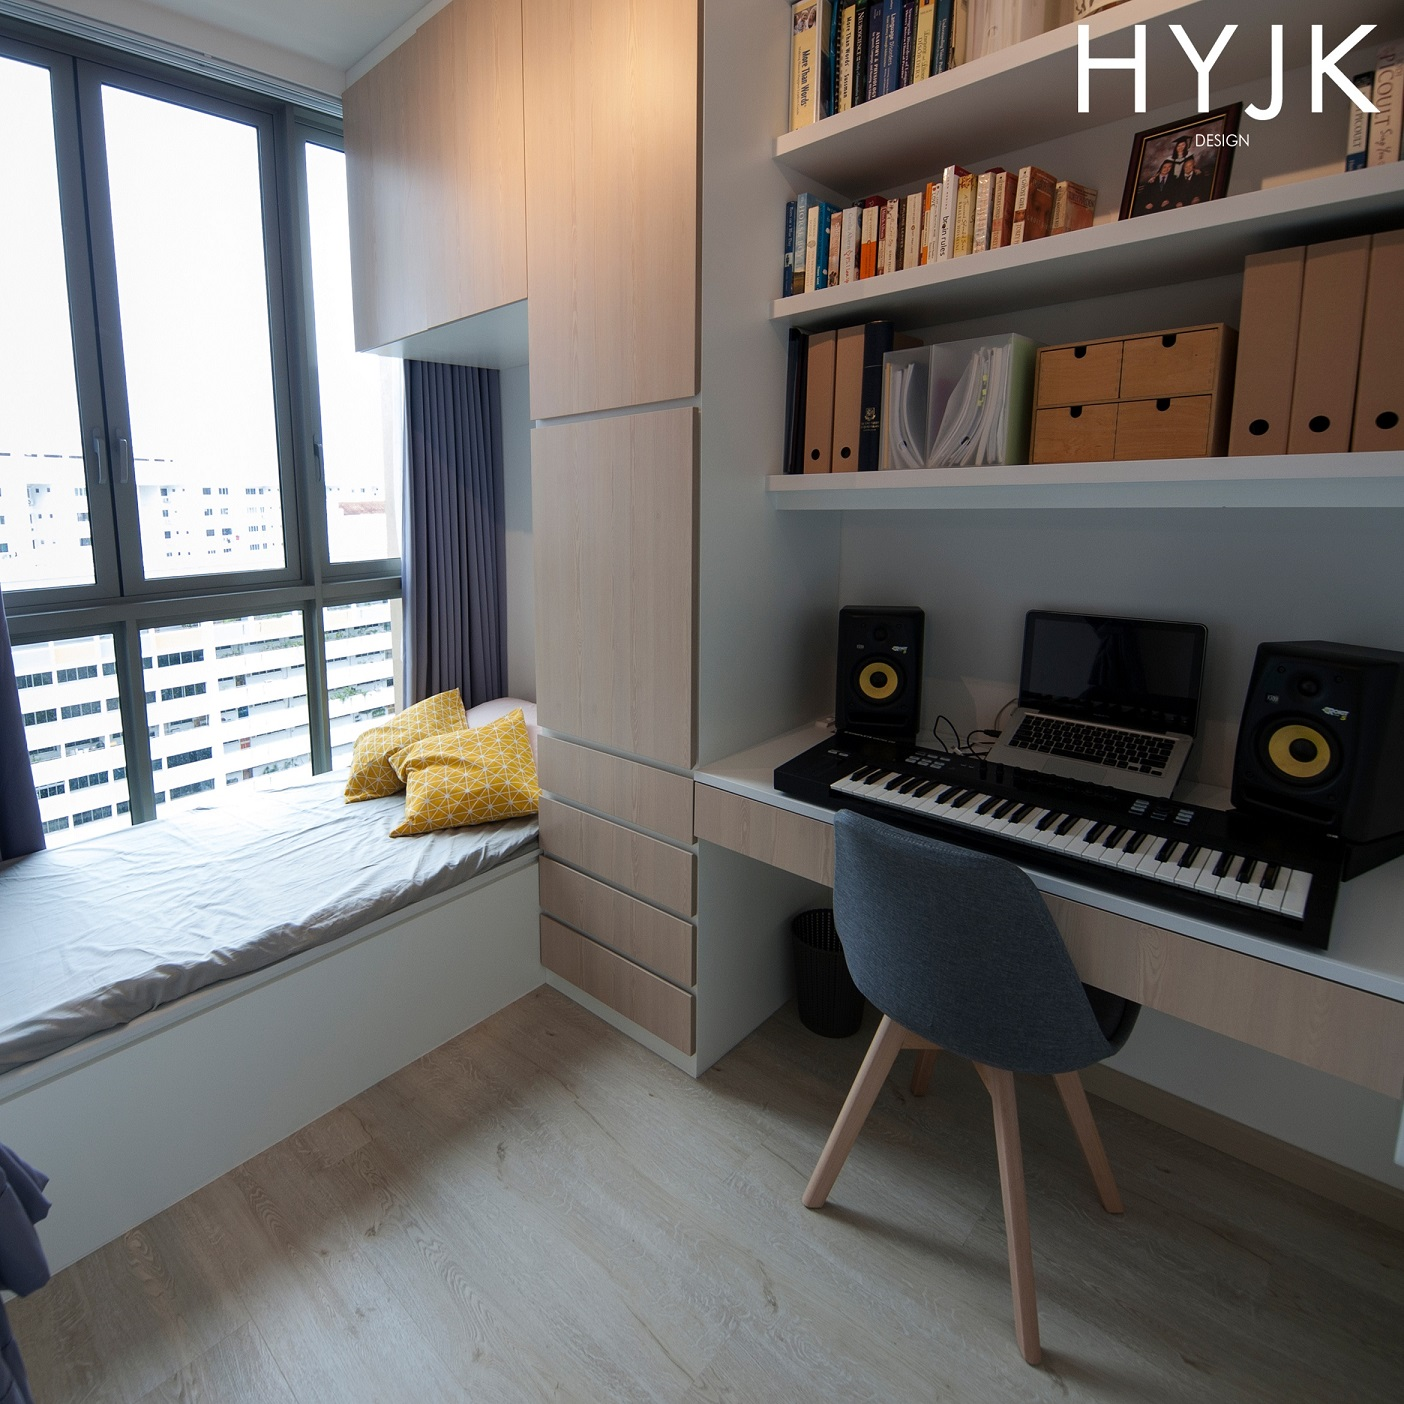 This guest room has multiple functions. It is the music room and study too. The built-in shelves, cabinets and desk maximise the wall space which makes this tiny room look spacious! (Project Chill Culture)